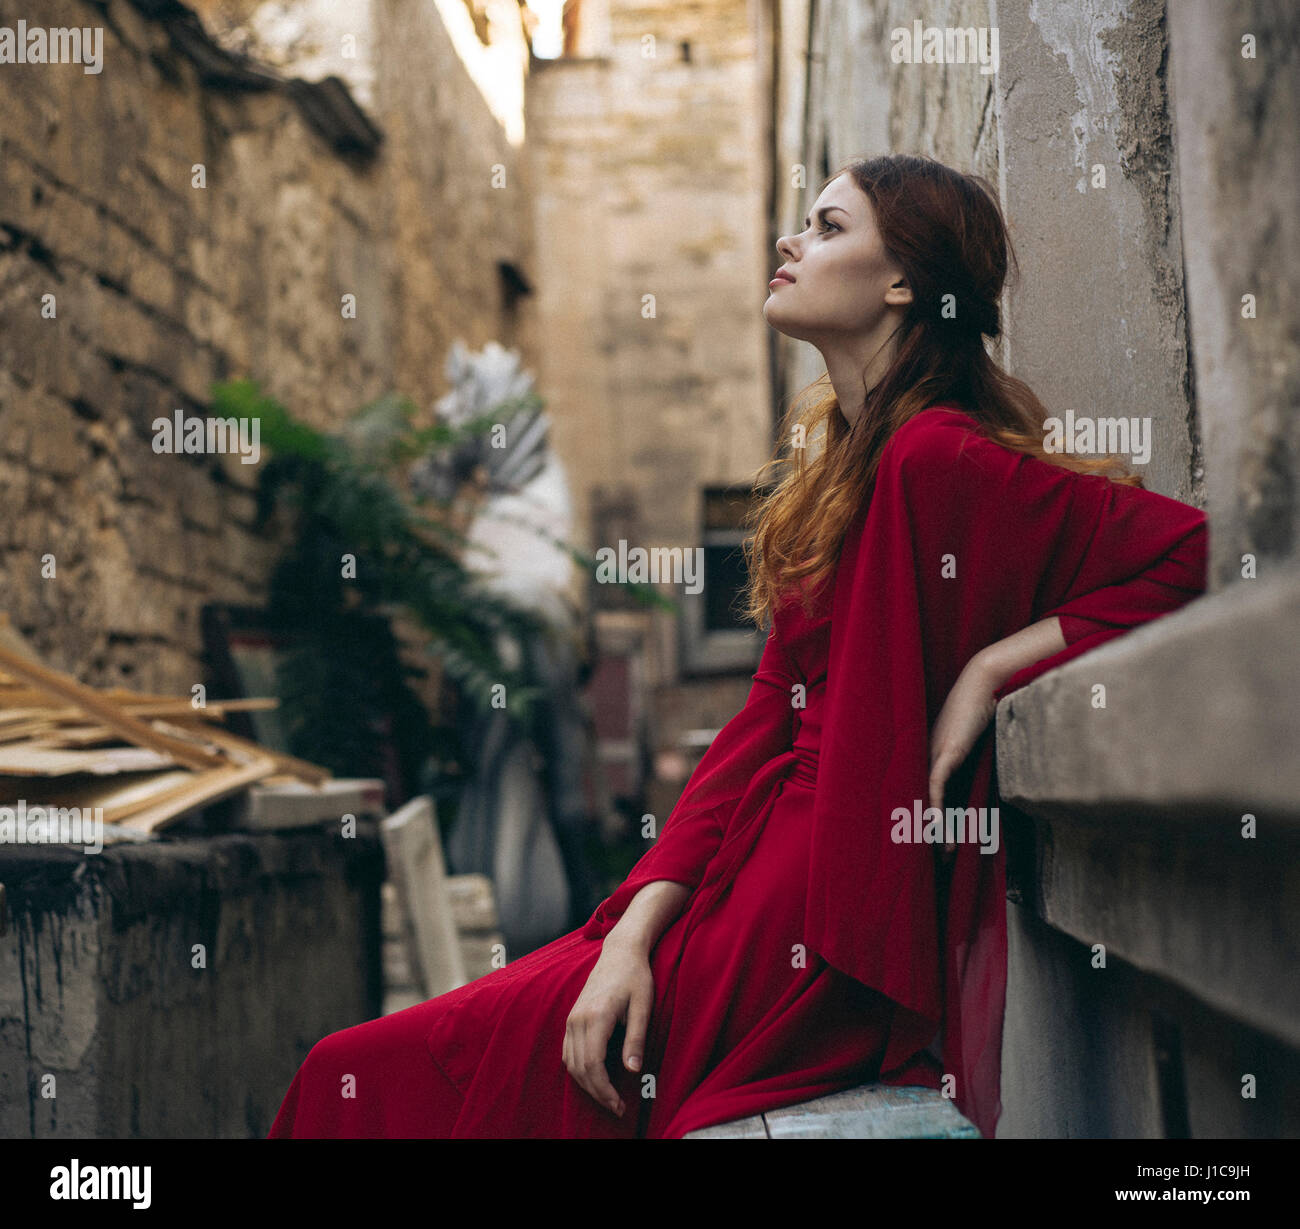 Caucasian woman wearing red dress sitting on bench in alley - Stock Image